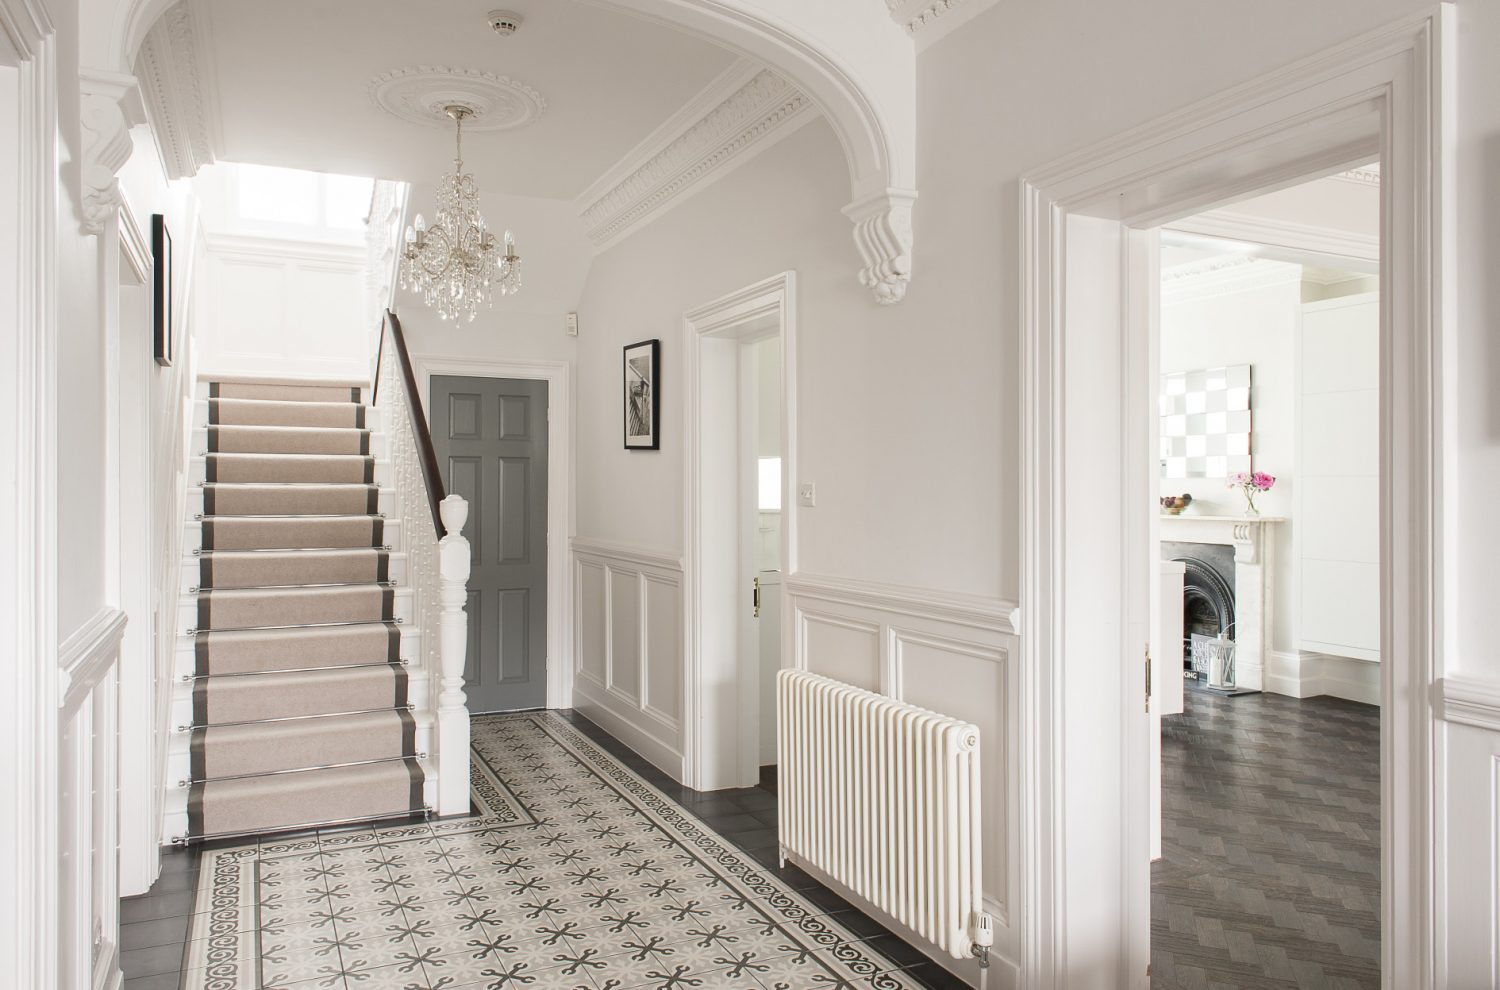 Beneath a sparkling chandelier, the impressive entrance hall features a floor tiled in Fired Earth 'Patisserie' tiles